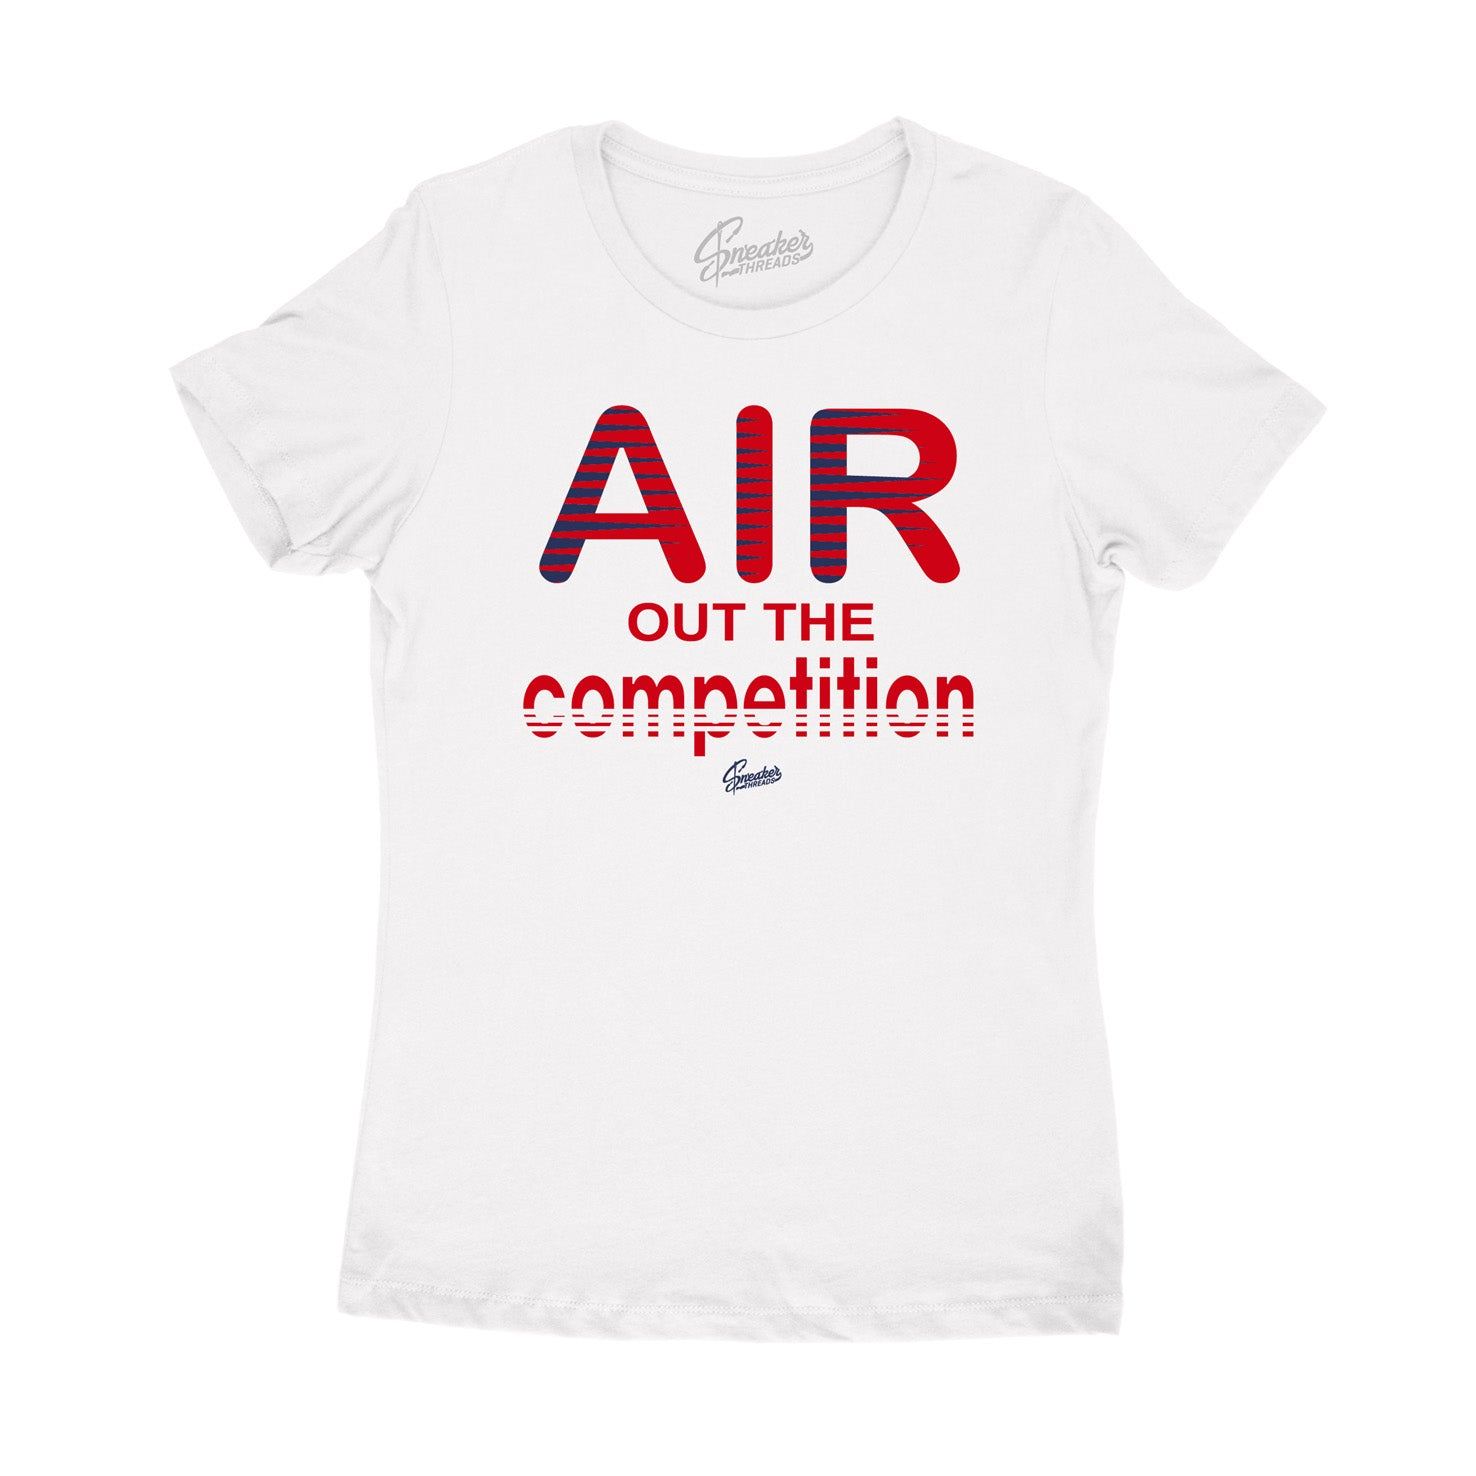 Women's Jordan 4 Fiba shirts exclusively online